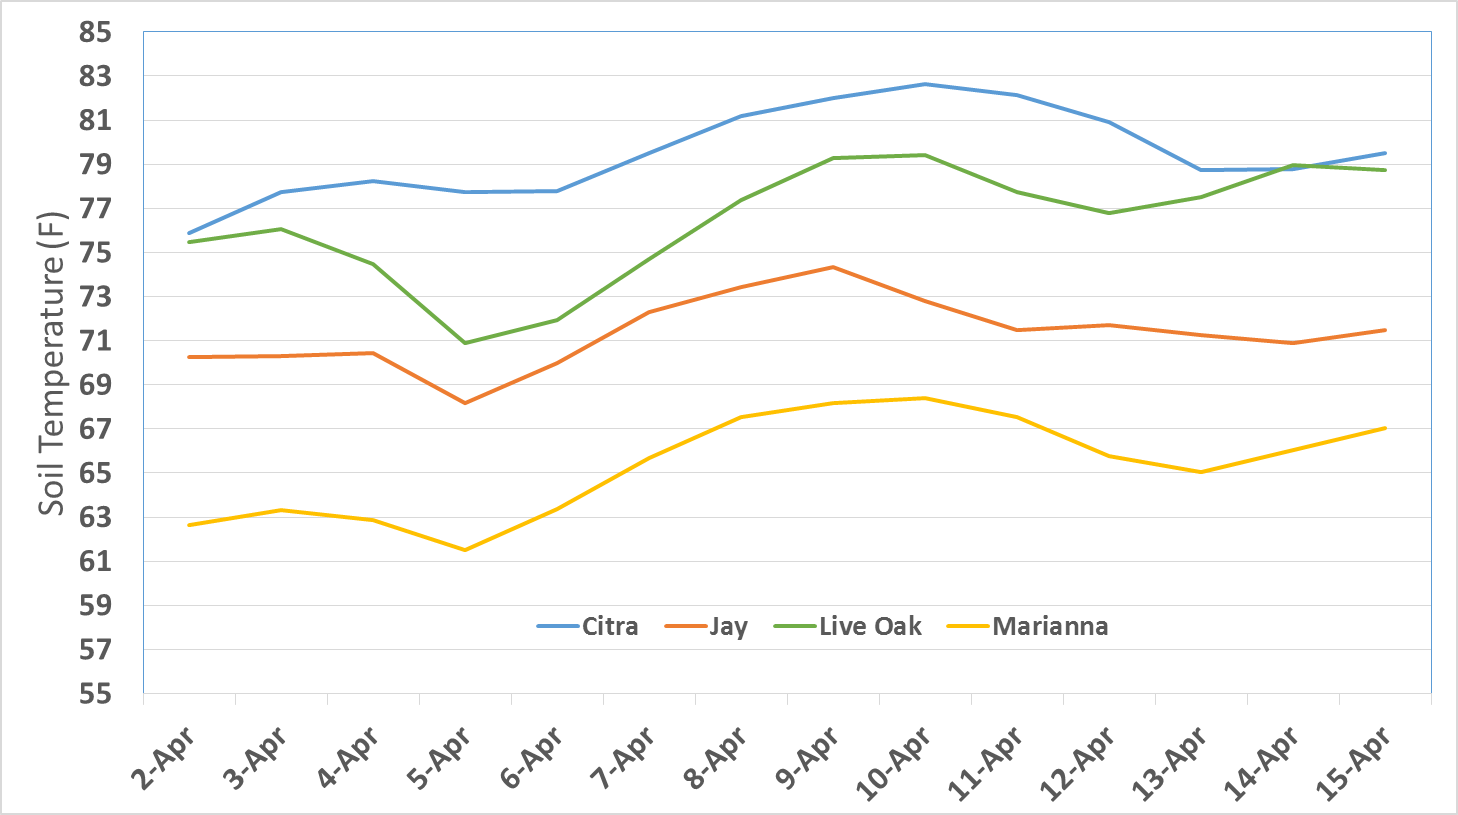 Figure 1. Soil temperatures for the past 14 days in April across the Florida peanut production belt.